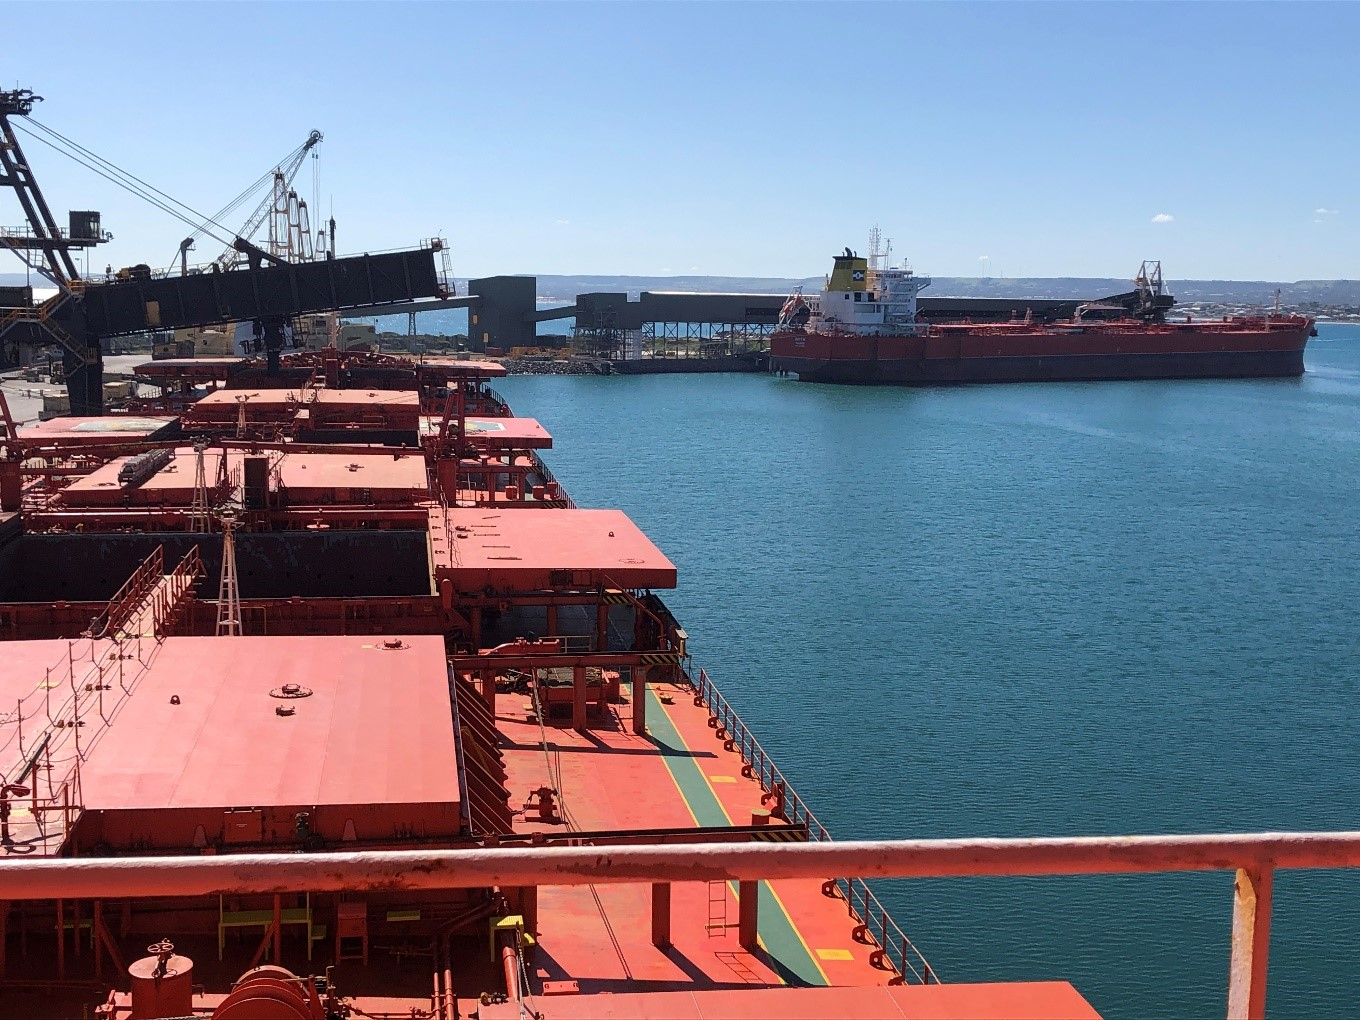 Image: First generation CABU along second generation CABU, both with inbound wet cargo and outbound iron ore cargoes from Australia.